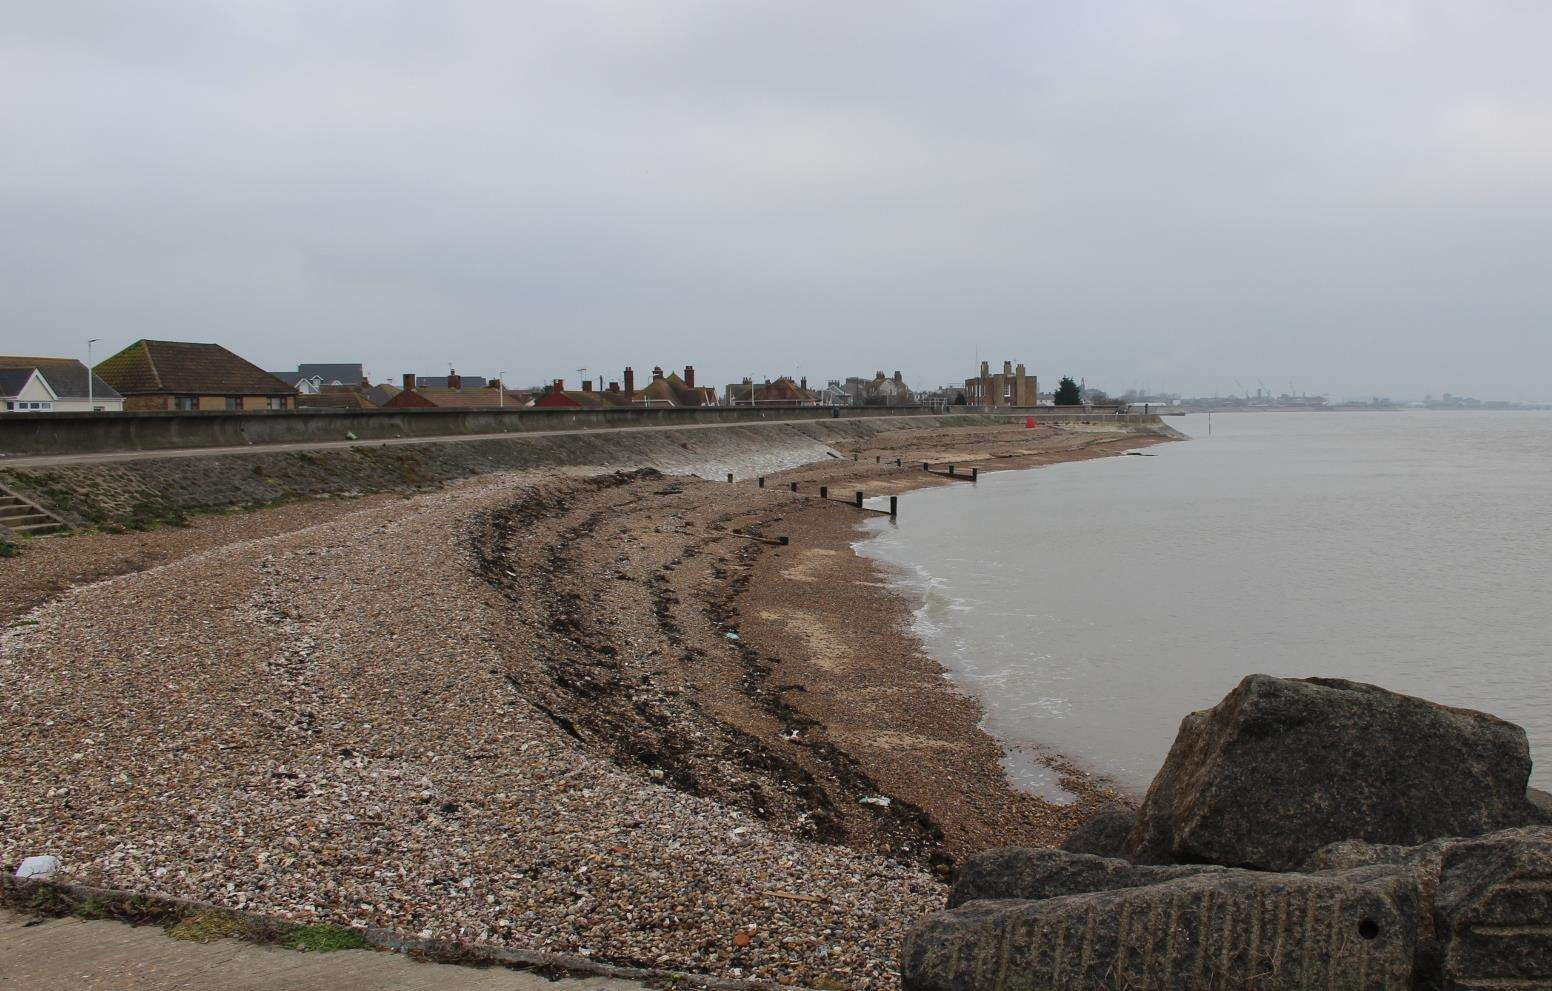 The beach at Sheerness where Anne McManus wants her ashes scattered